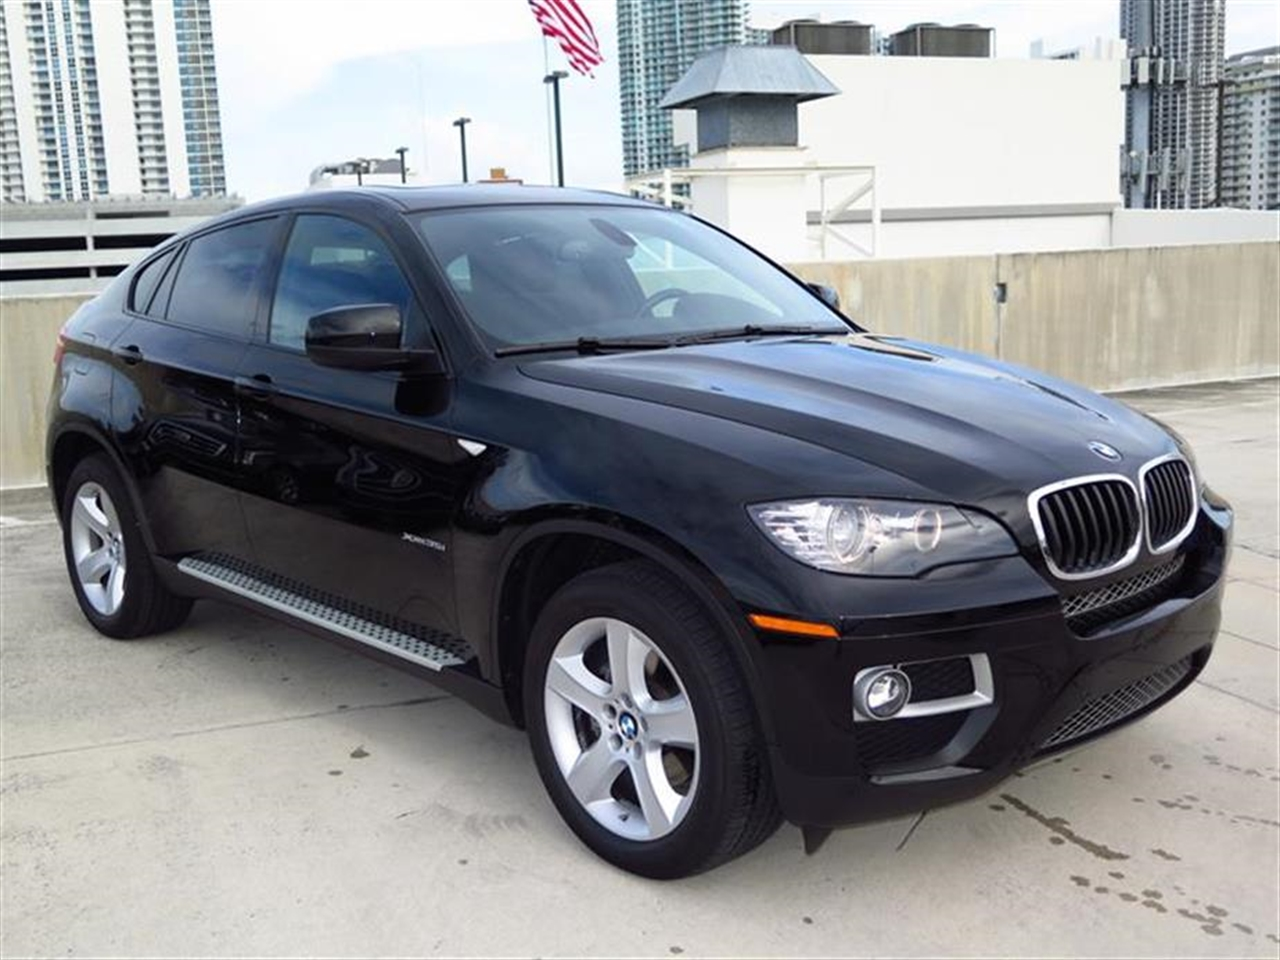 2014 BMW X6 AWD 4dr xDrive35i 5879 miles 2 Seatback Storage Pockets 4 Person Seating Capacity 5